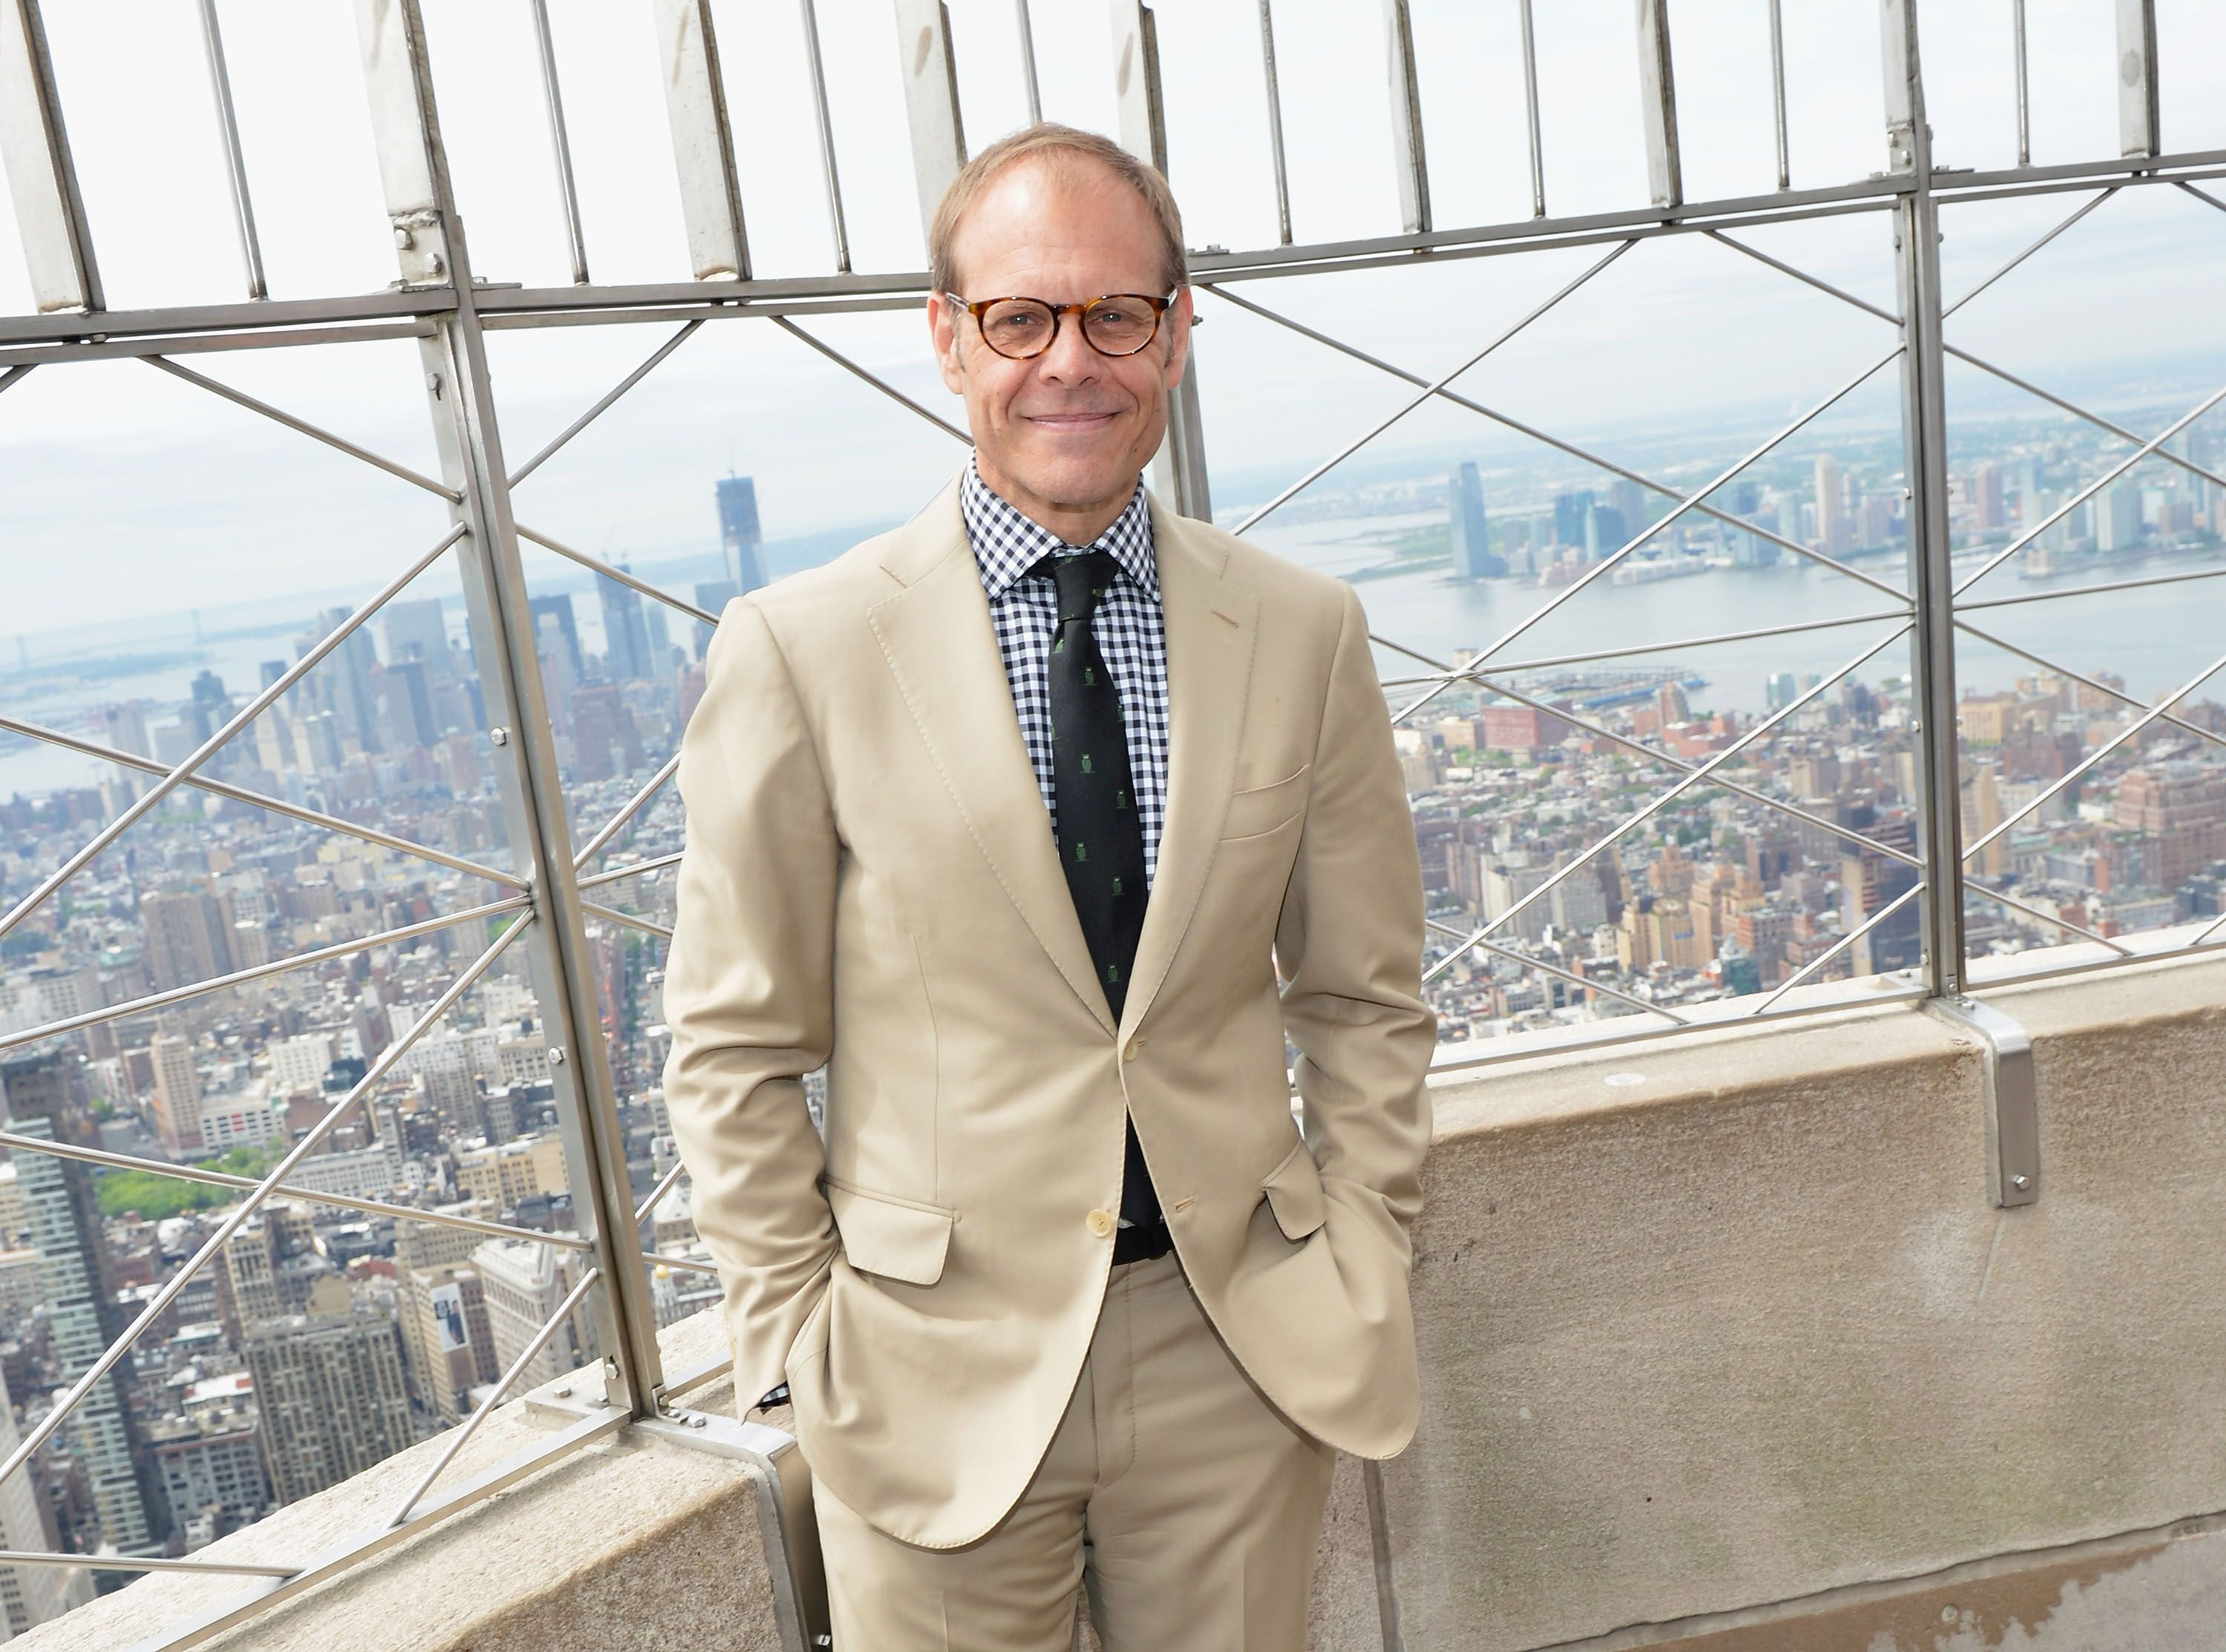 Alton Brown at Empire State Building Lighting In Celebration Of the 2012 James Beard Foundation at The Empire State Building on May 7, 2012   Photo: Getty Images